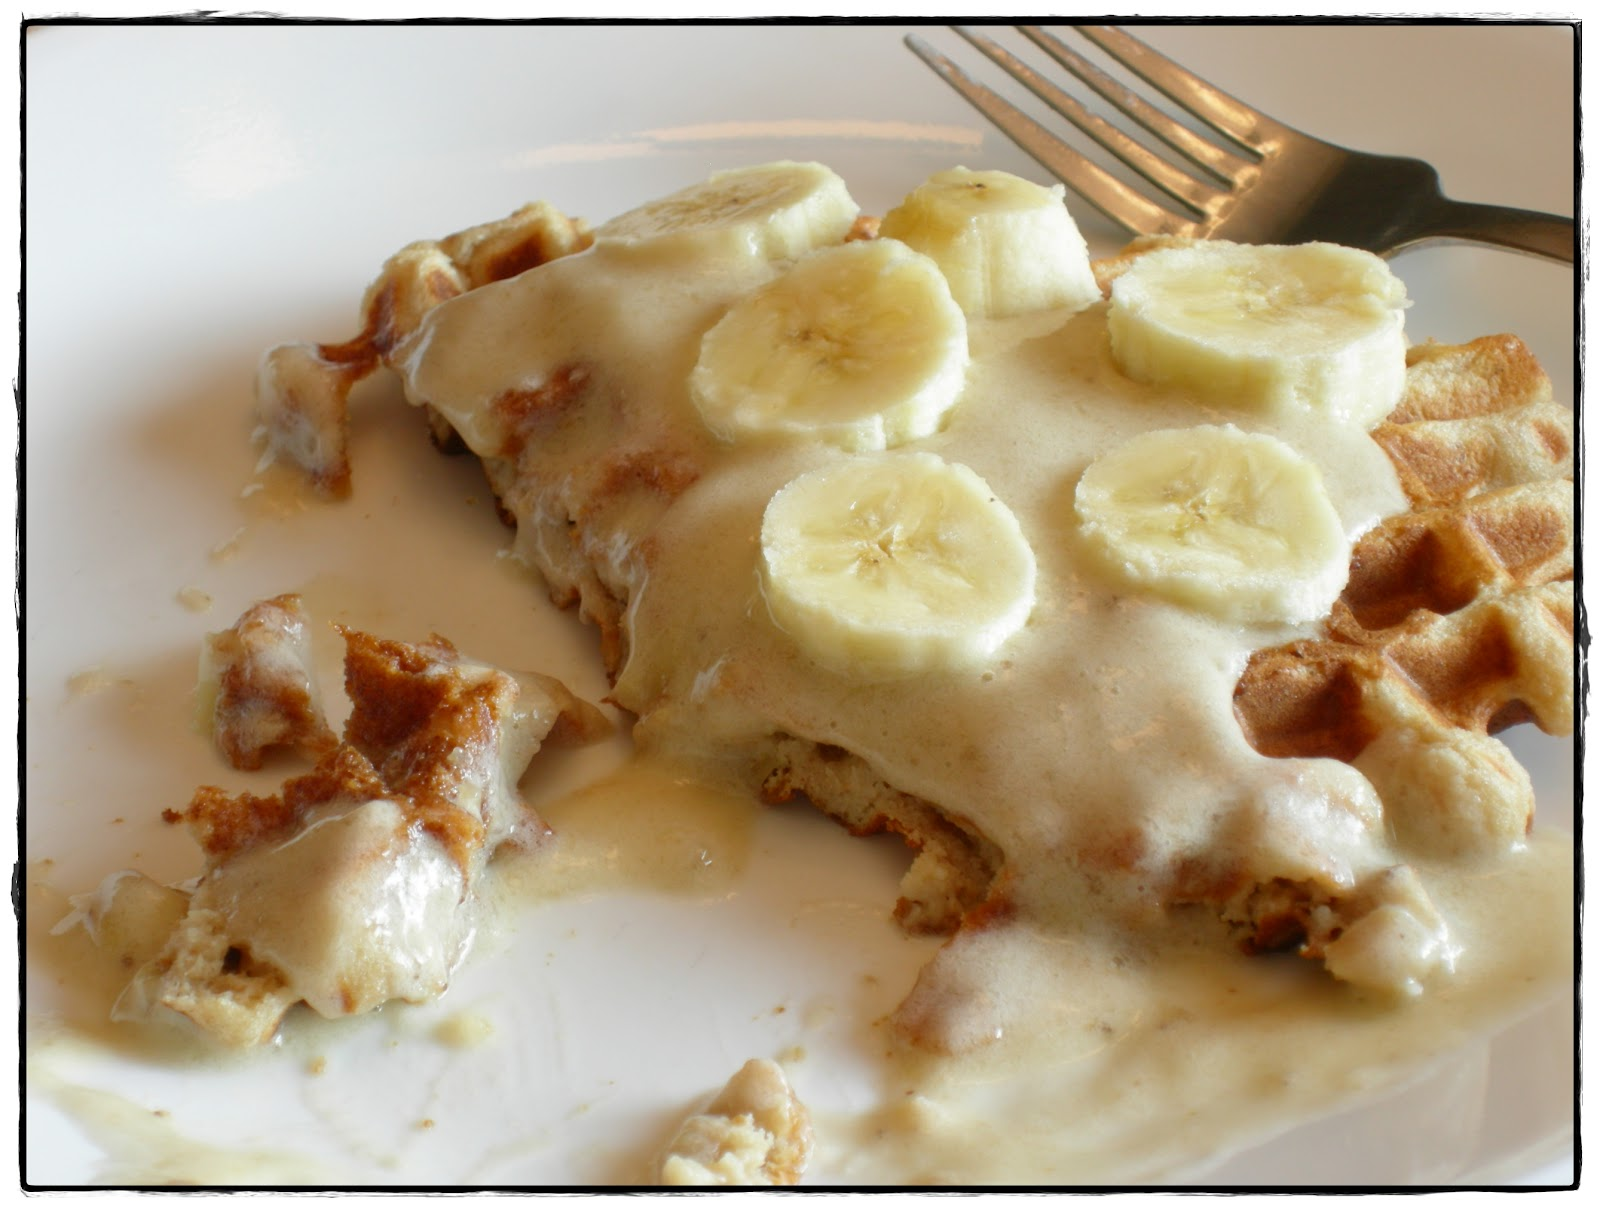 Additive-Free Eats: Maple Walnut Waffles w/Banana Soft Serve